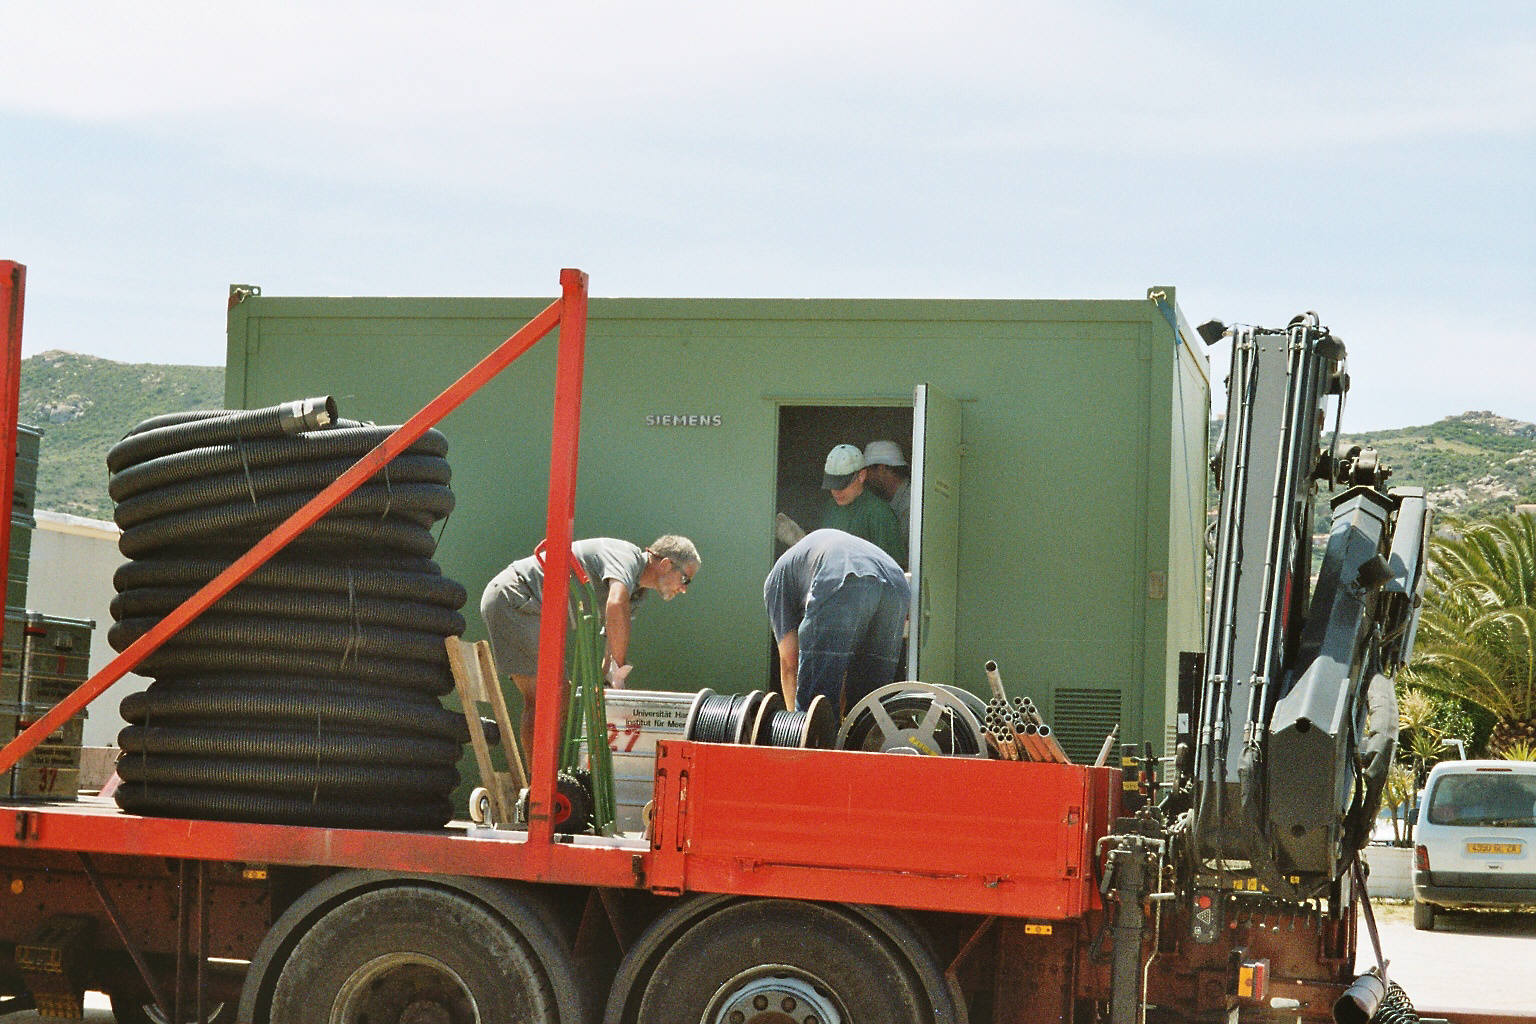 Unloading equipment for the central site